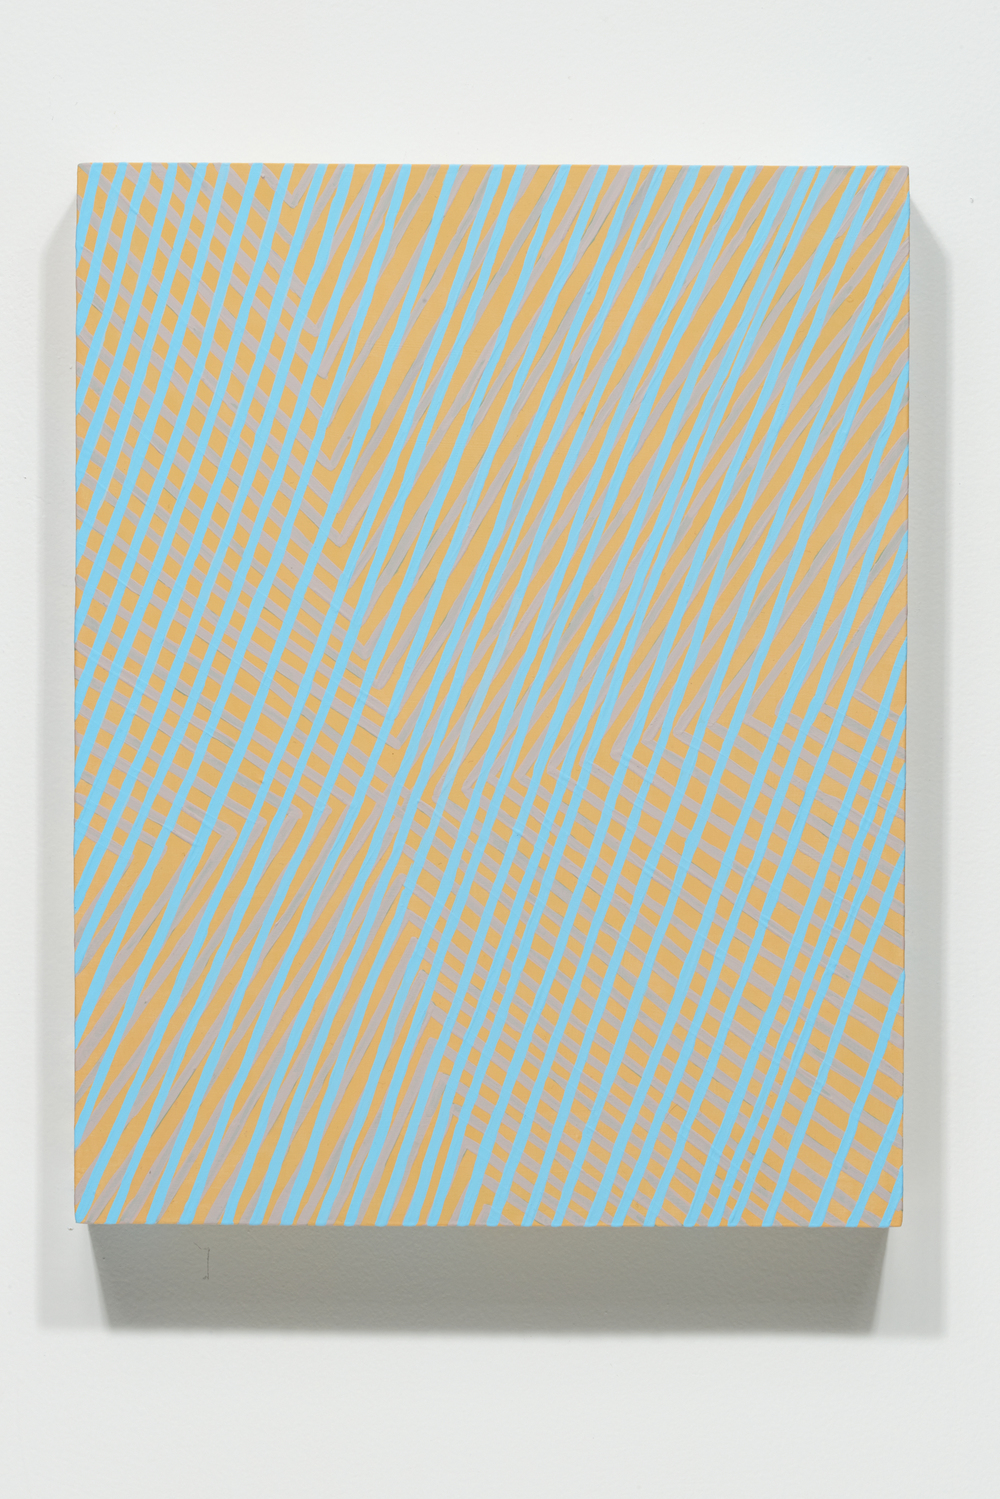 "Mel Prest, ""Almost Invisible,""  2014, acrylic and phosphorescent acrylic on panel, 14 x 11 x 2 inches"